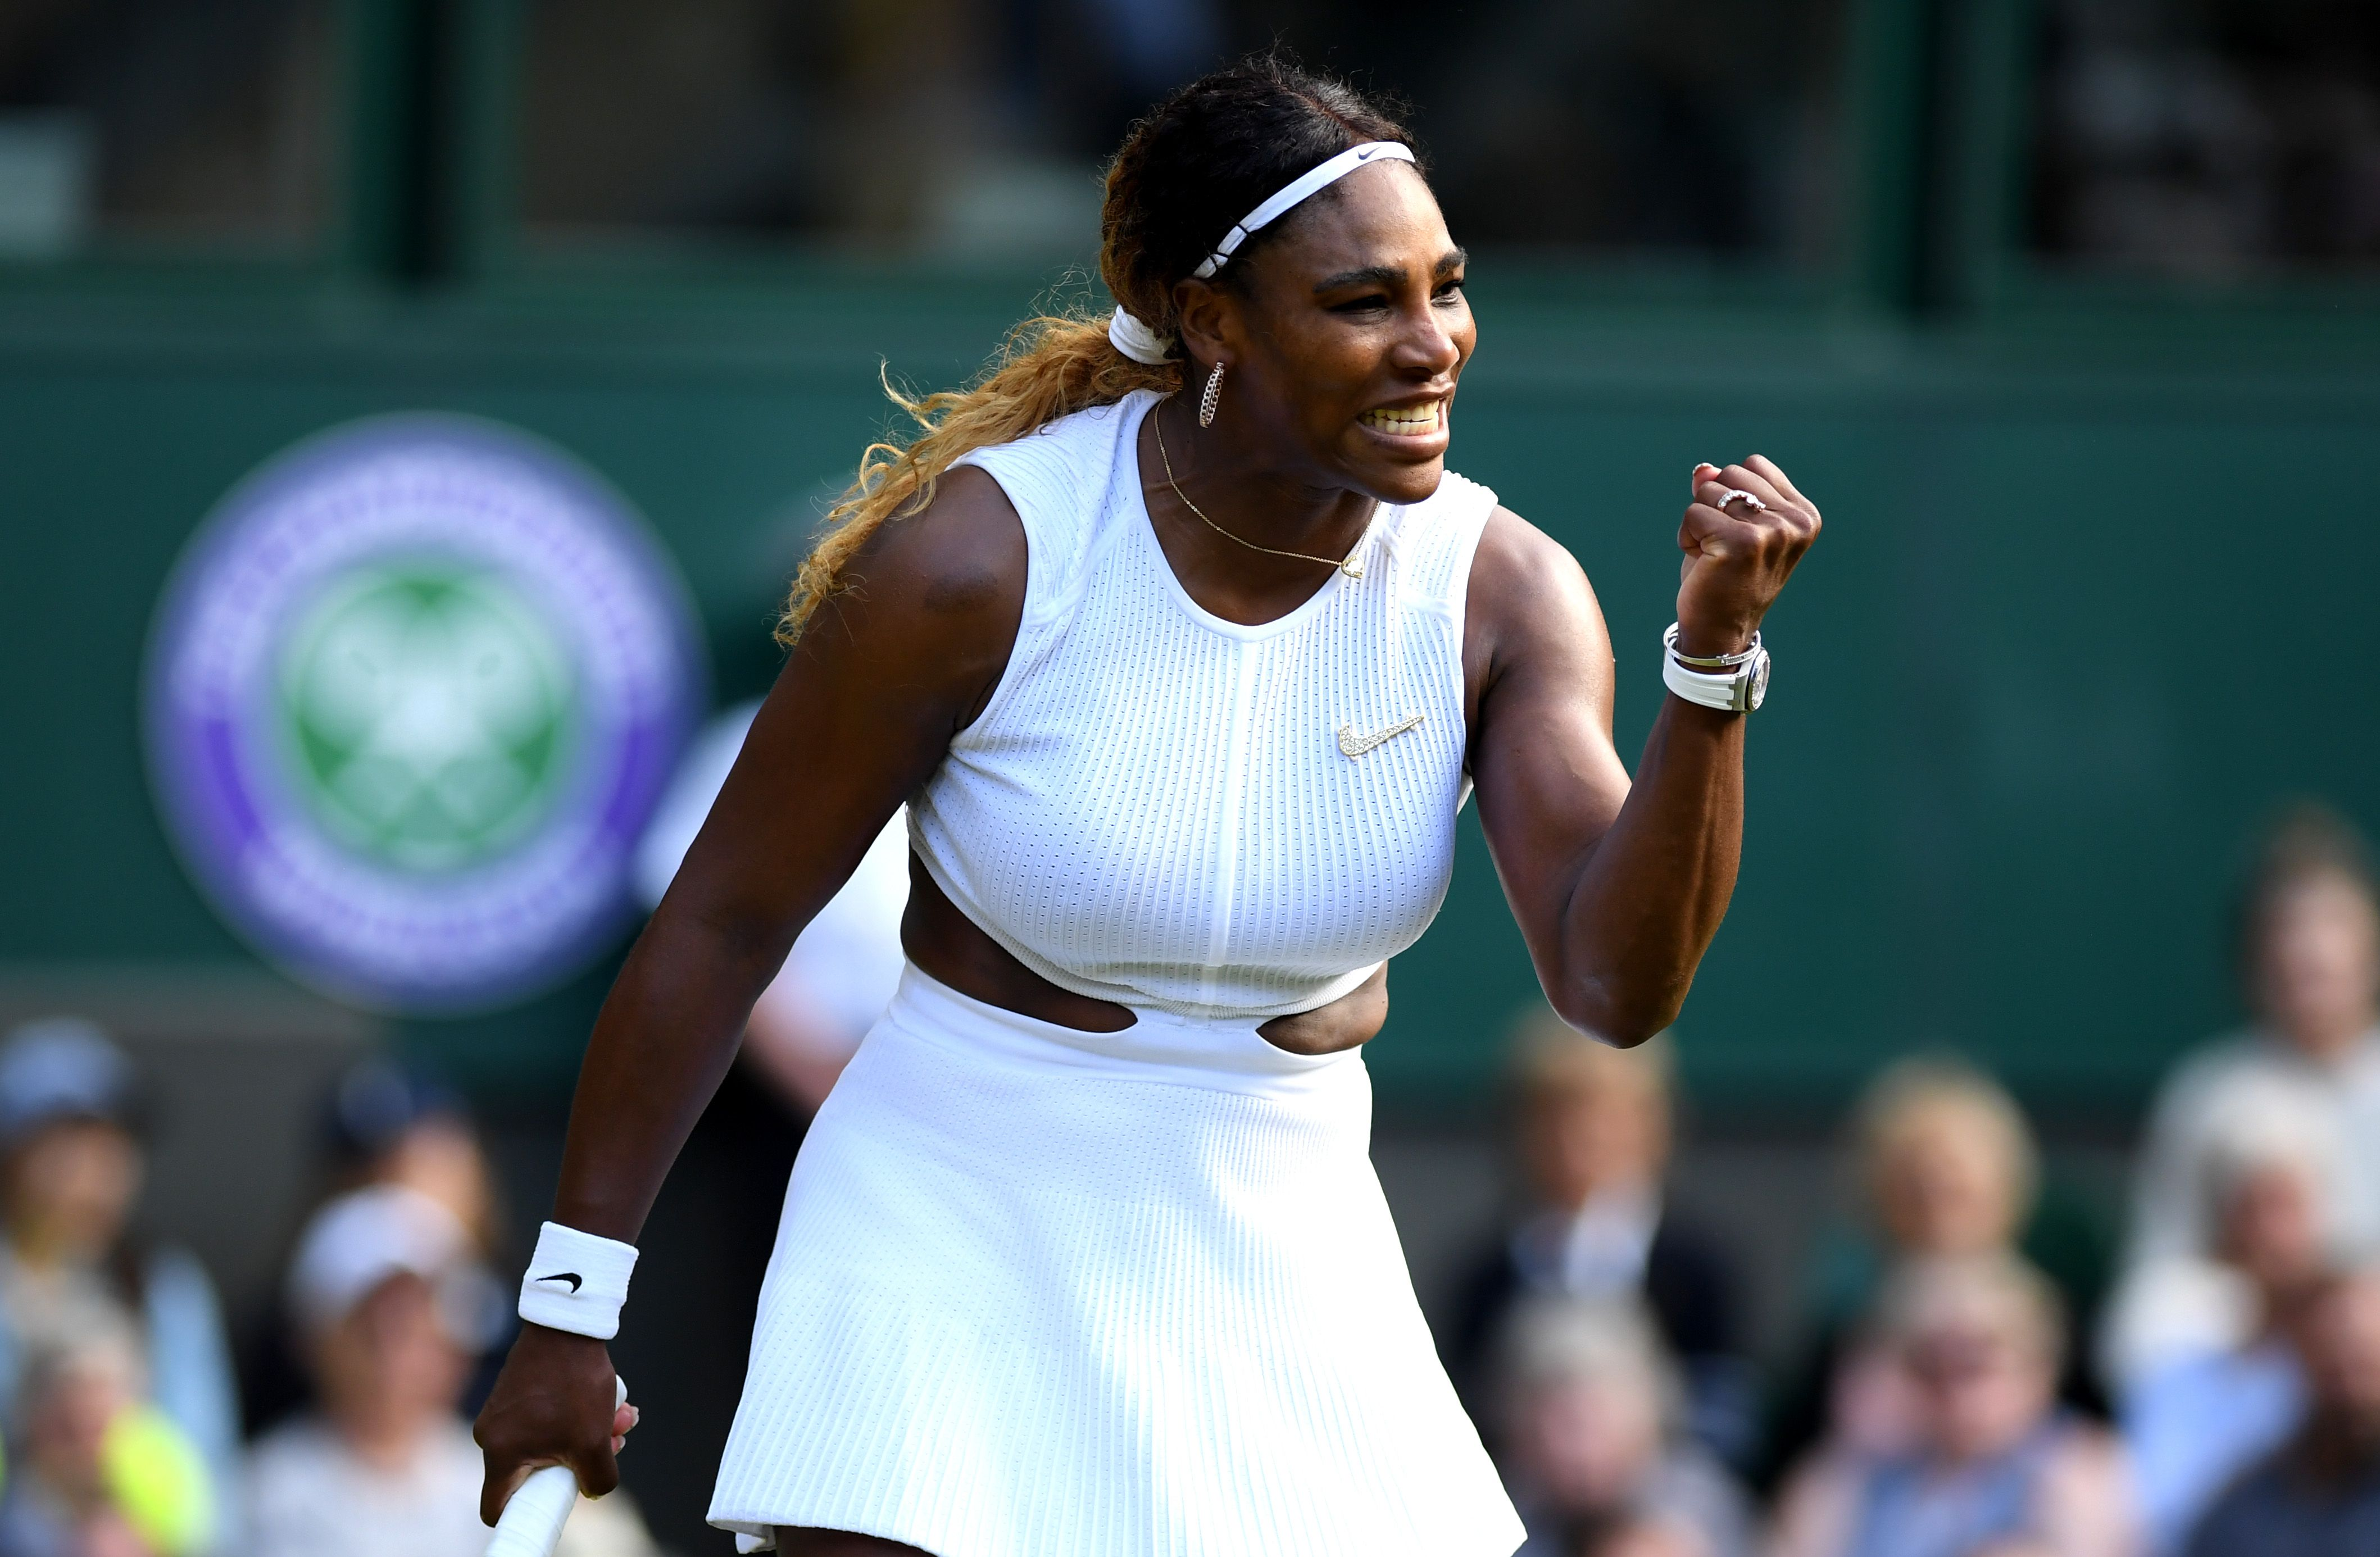 Serena Williams' Wimbledon outfit has a very interesting detail nobody noticed